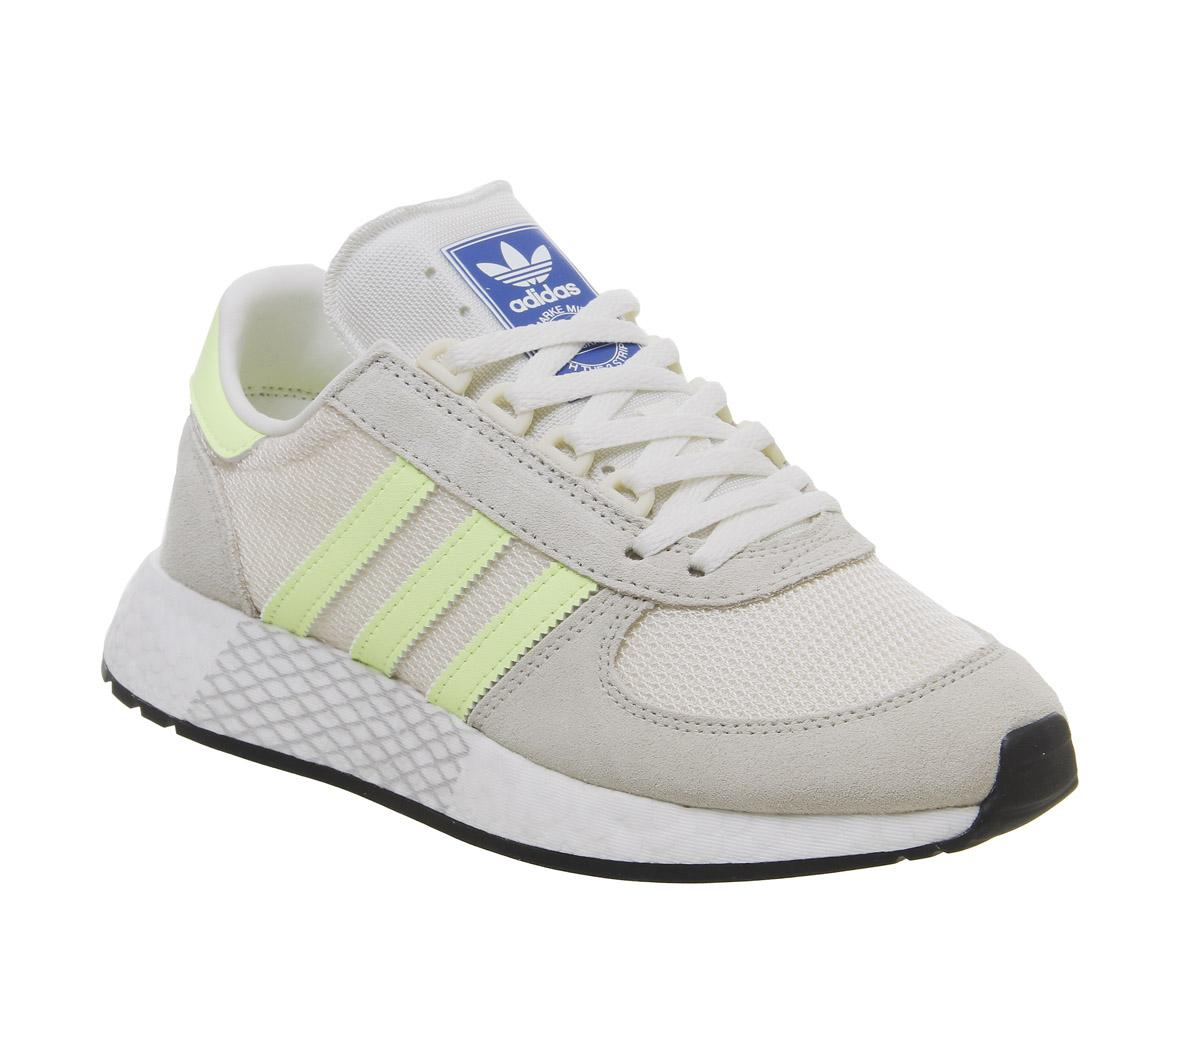 Caprichoso Kent reemplazar  adidas Marathon Tech Trainers Clear Brown Hires Yellow Ecru Tint - Unisex  Sports